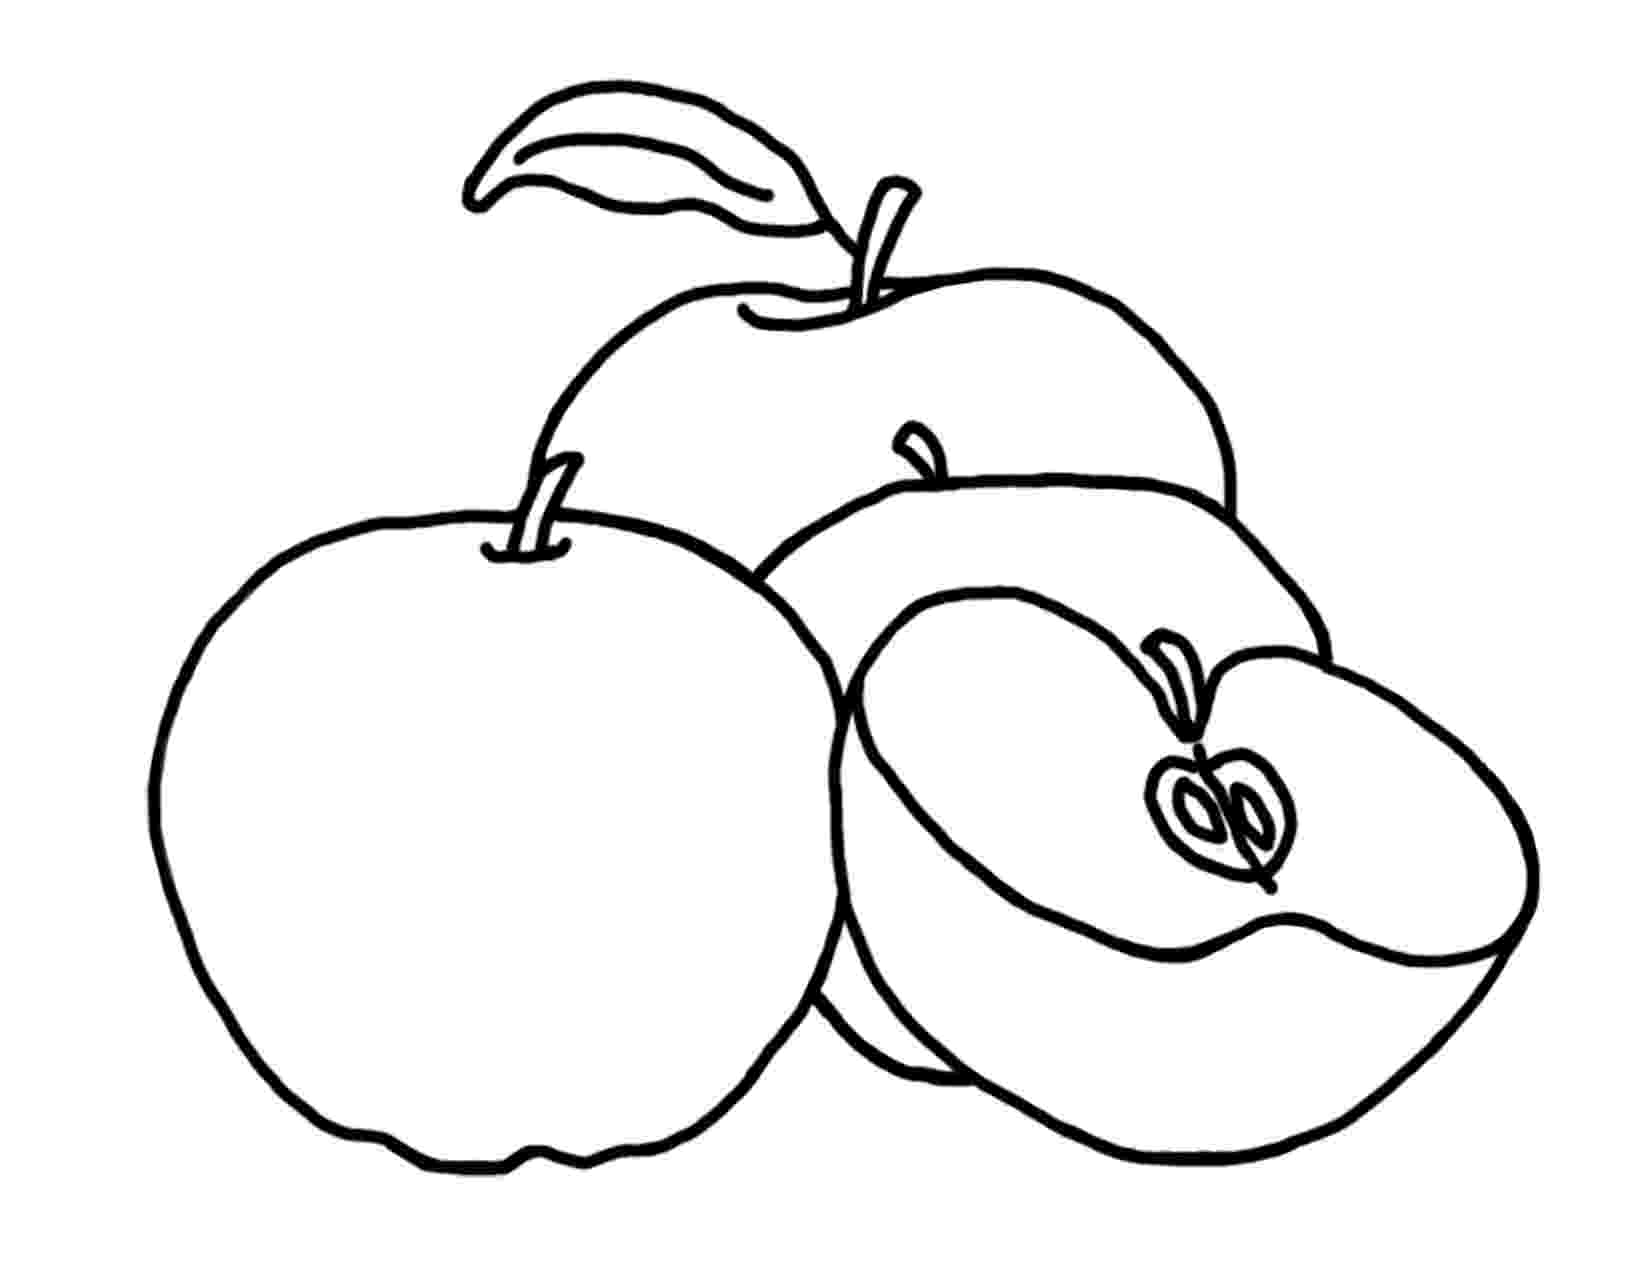 coloring apples free printable apple coloring pages for kids cool2bkids apples coloring